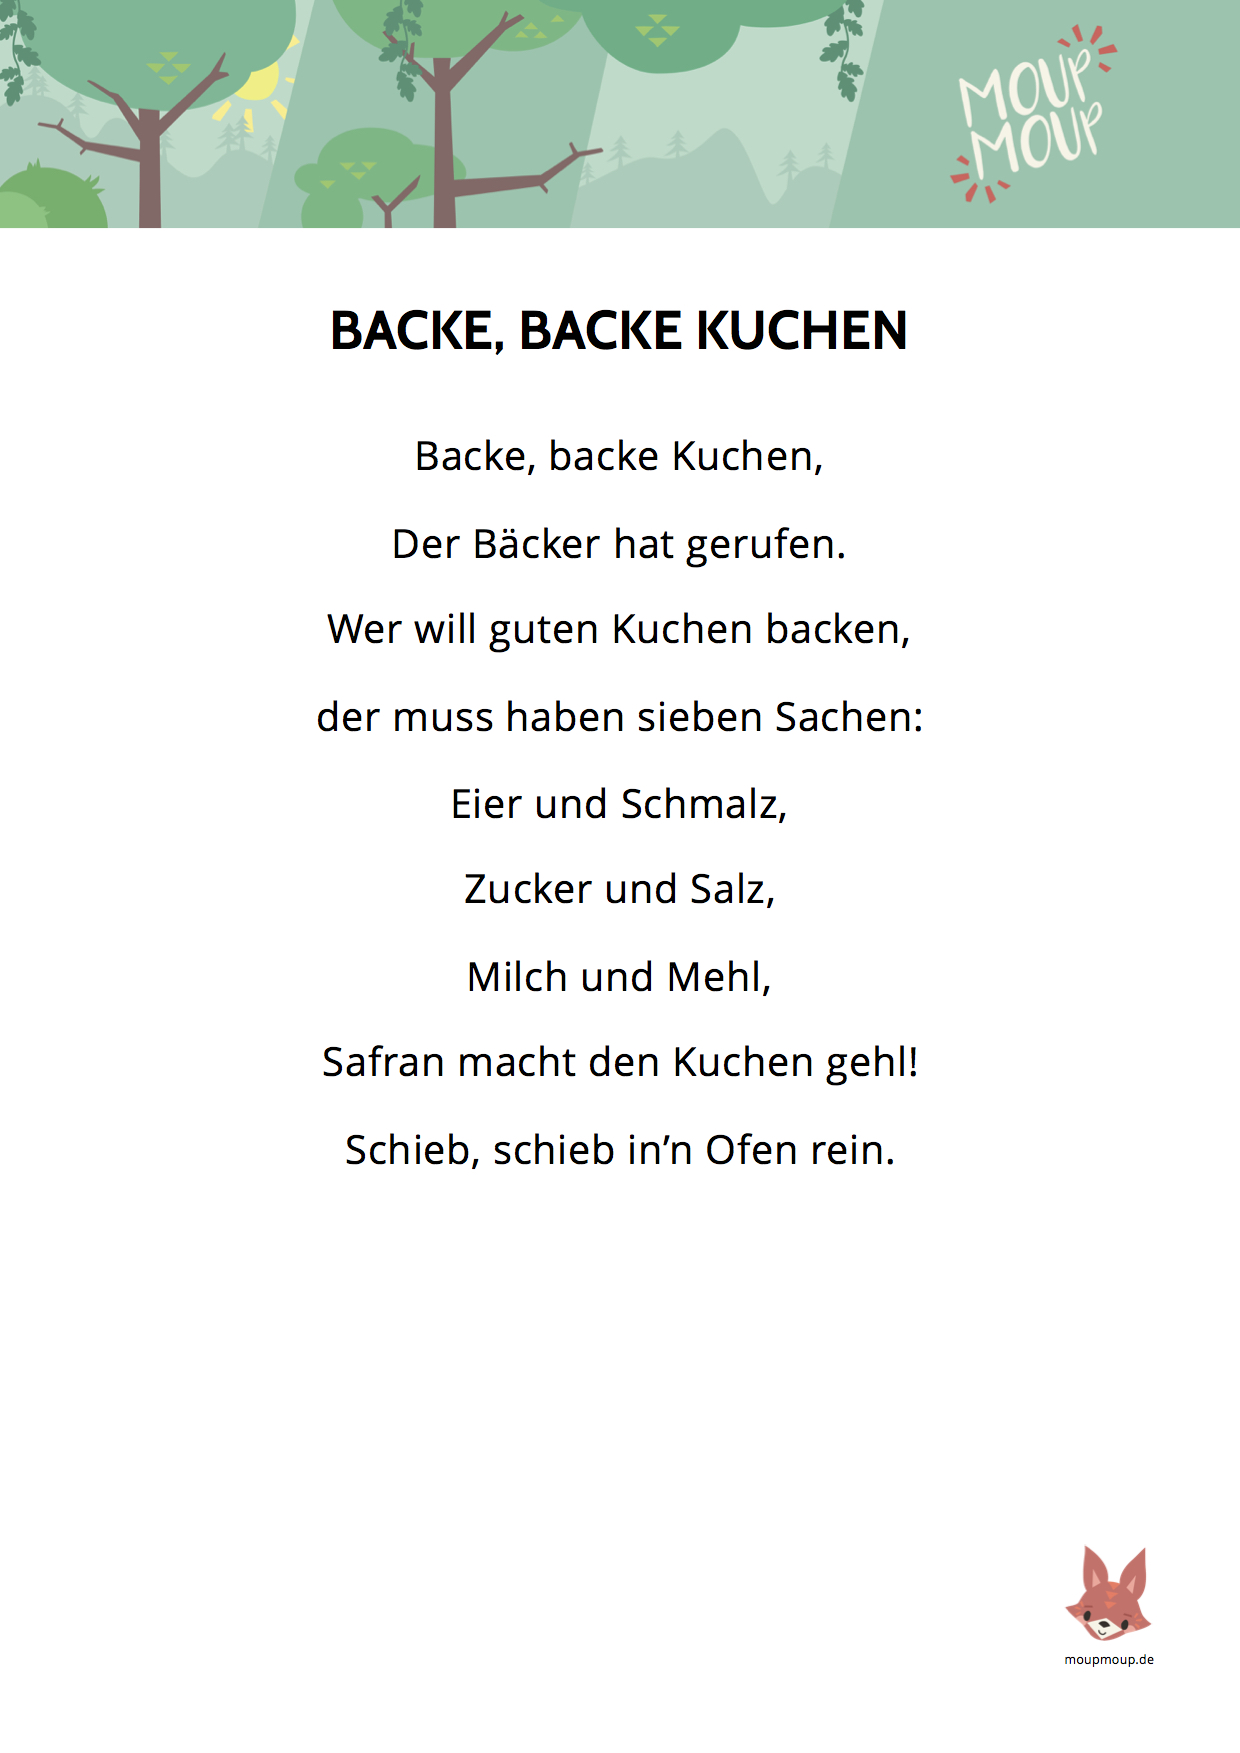 Backe Backe Kuchen Song Text Backe Backe Kuchen Zuhause Image Idee